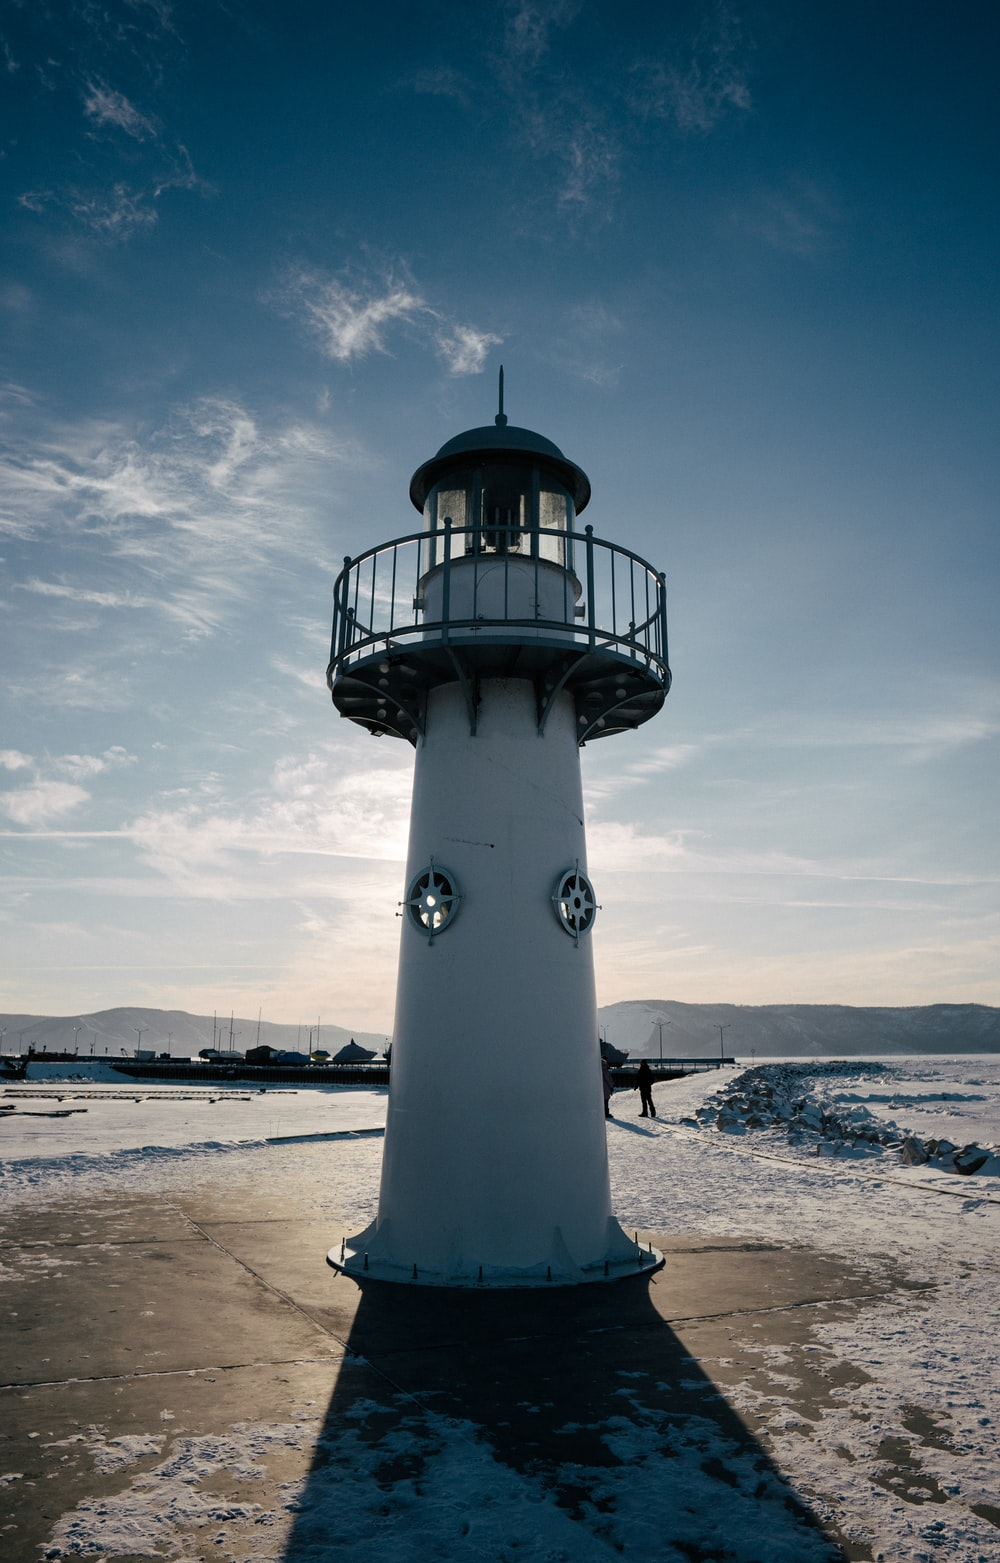 white and black lighthouse on beach under blue and white sunny cloudy sky during daytime